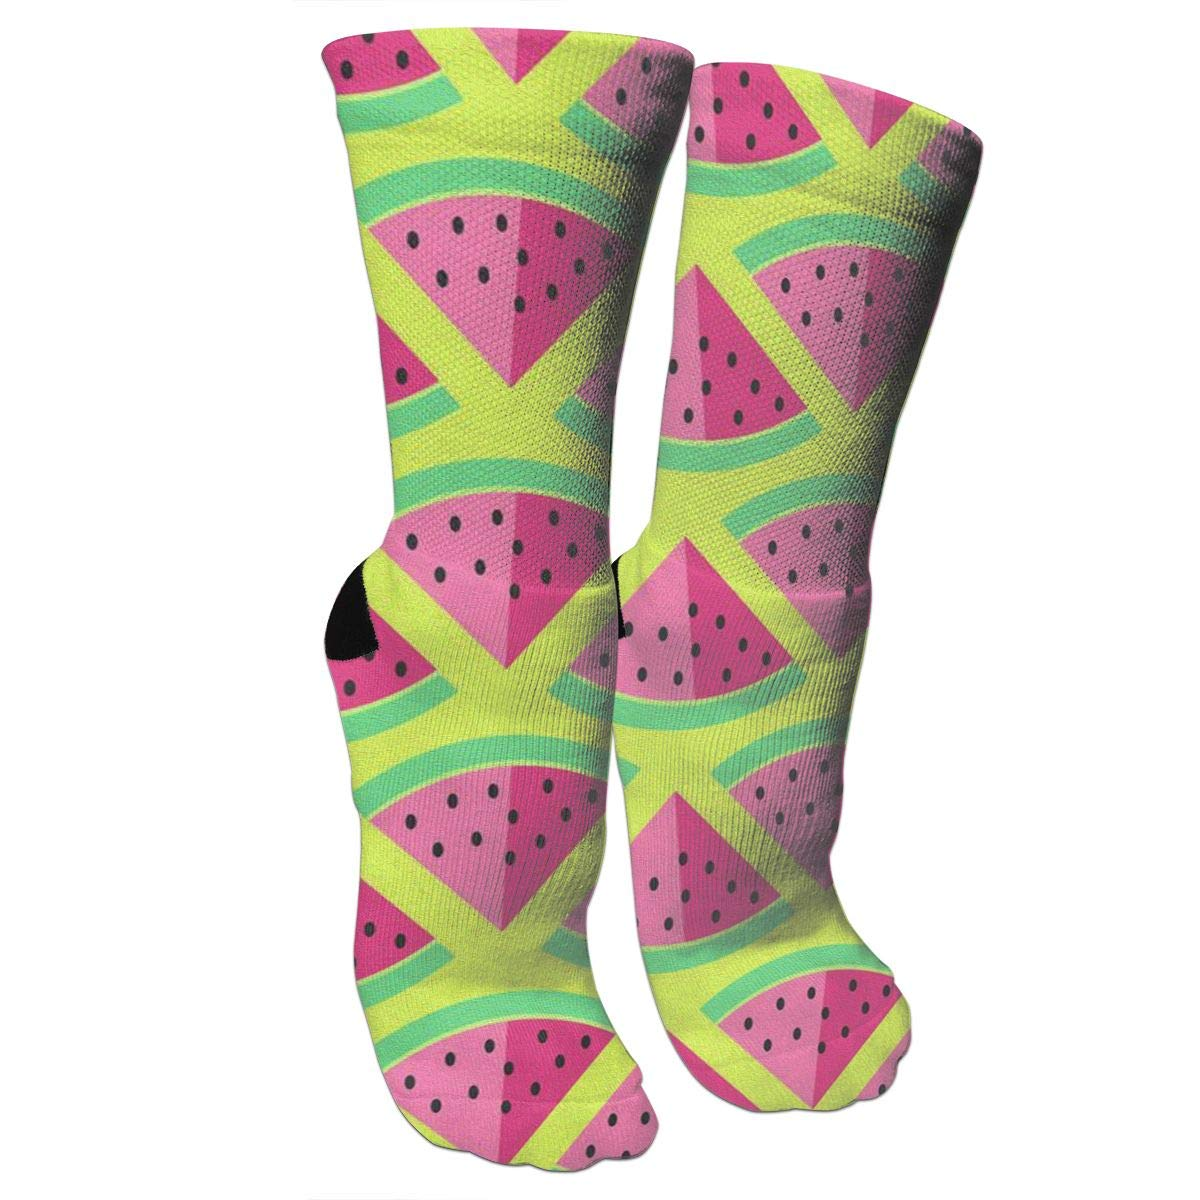 Watermelon FashionCrazy Socks Casual Cotton Crew Socks Cute Funny Sock Great For Sports And Hiking